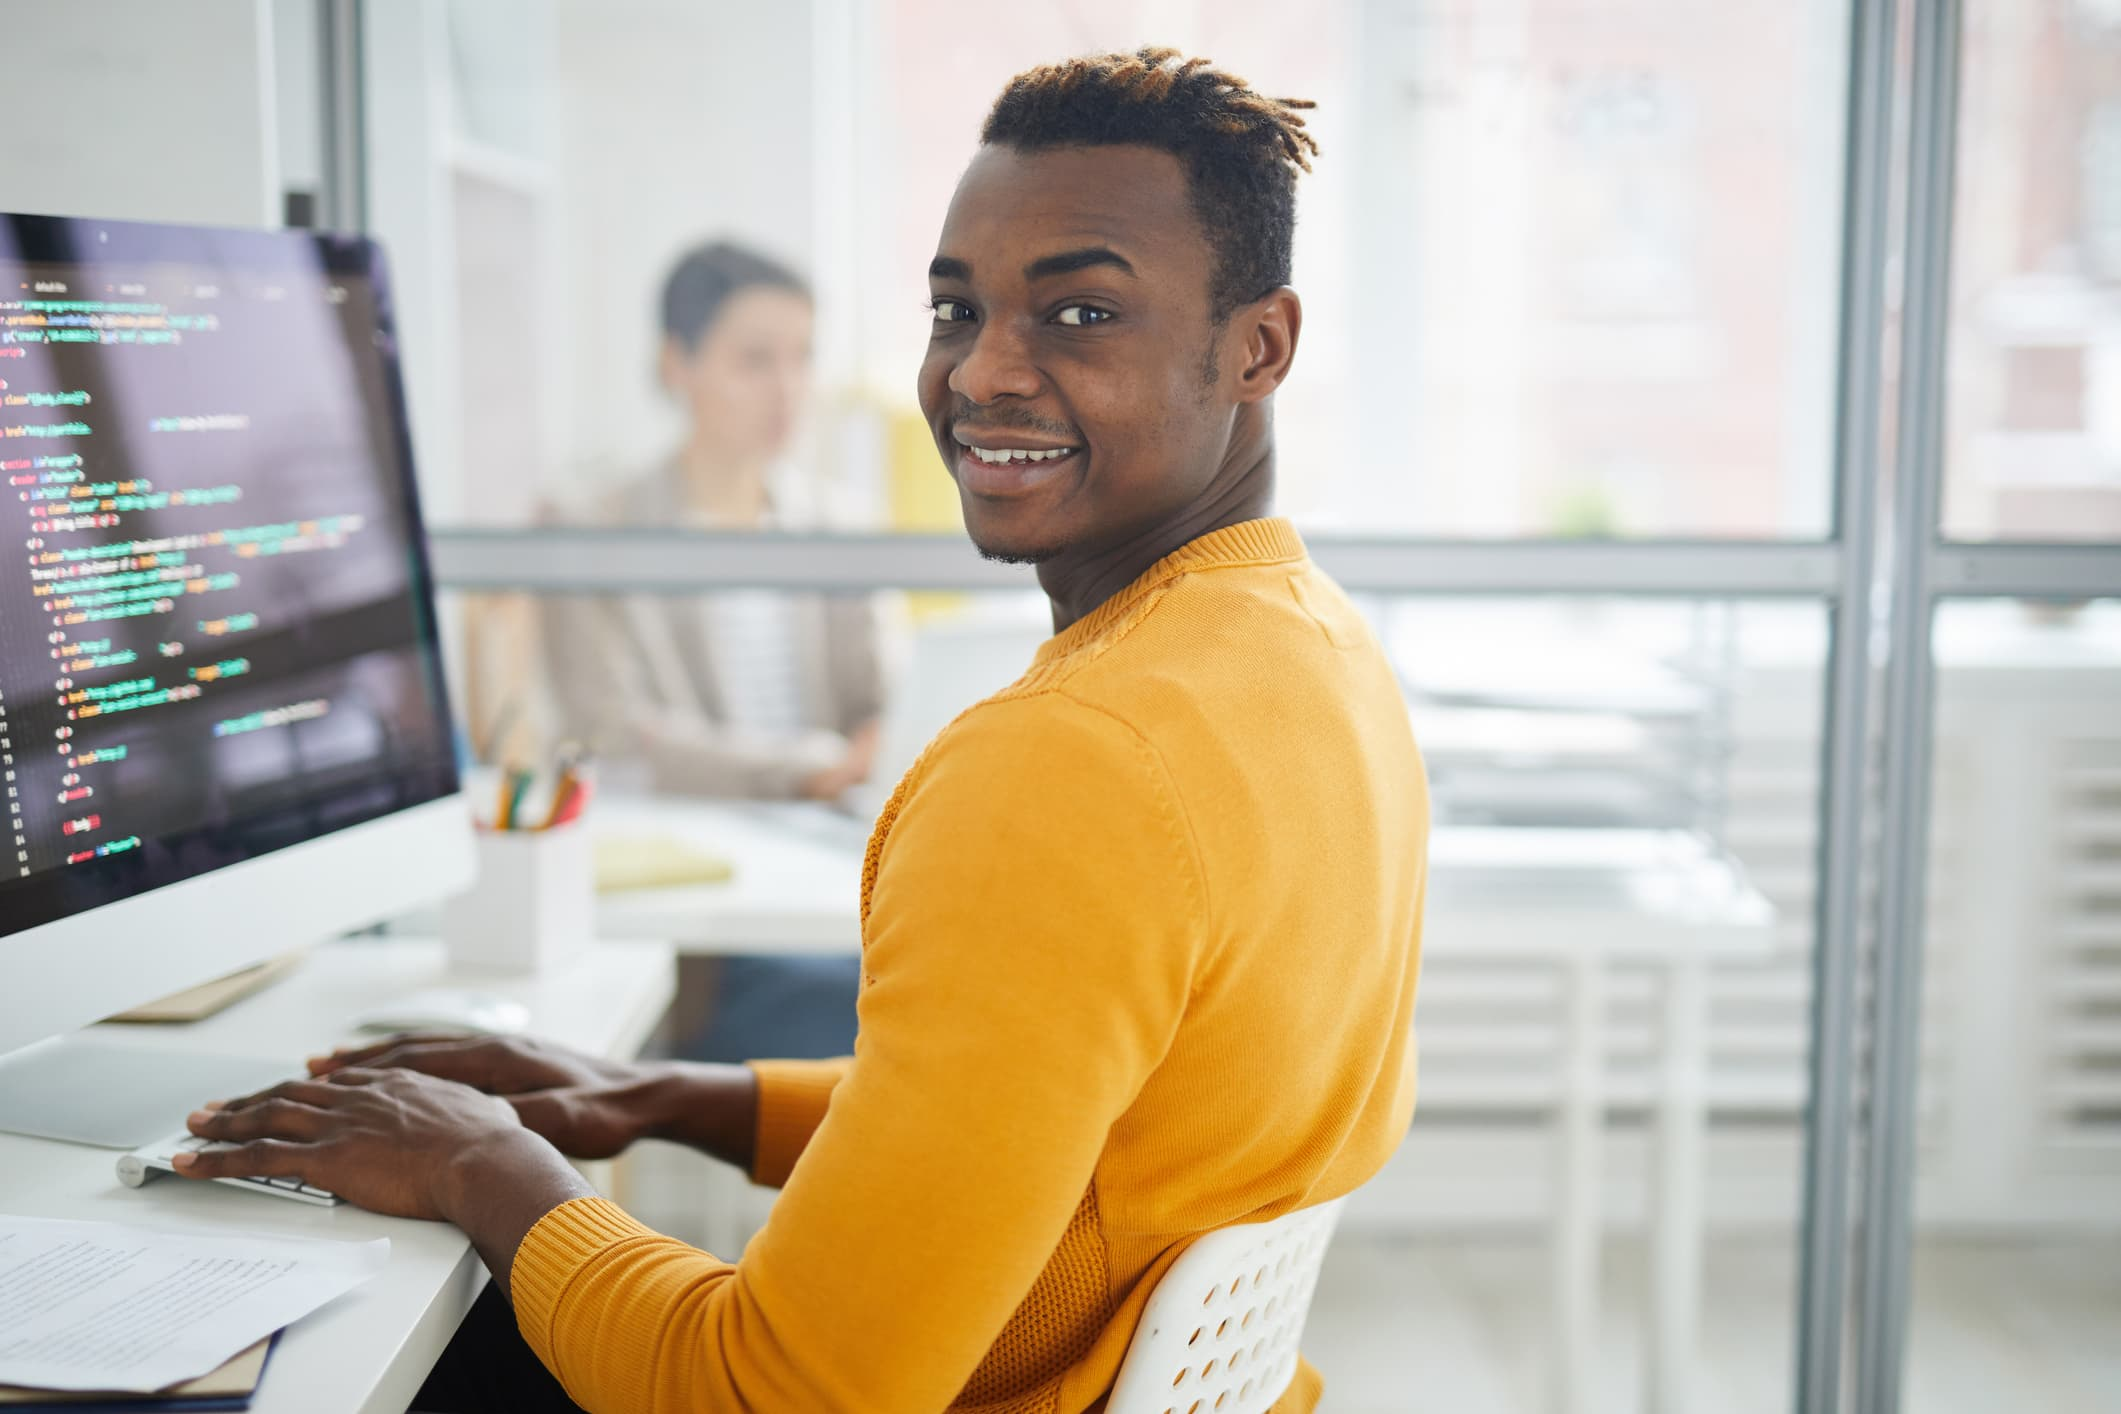 Smiling handsome young black programmer in yellow sweater sitting at desk and looking at camera while writing script for website in office